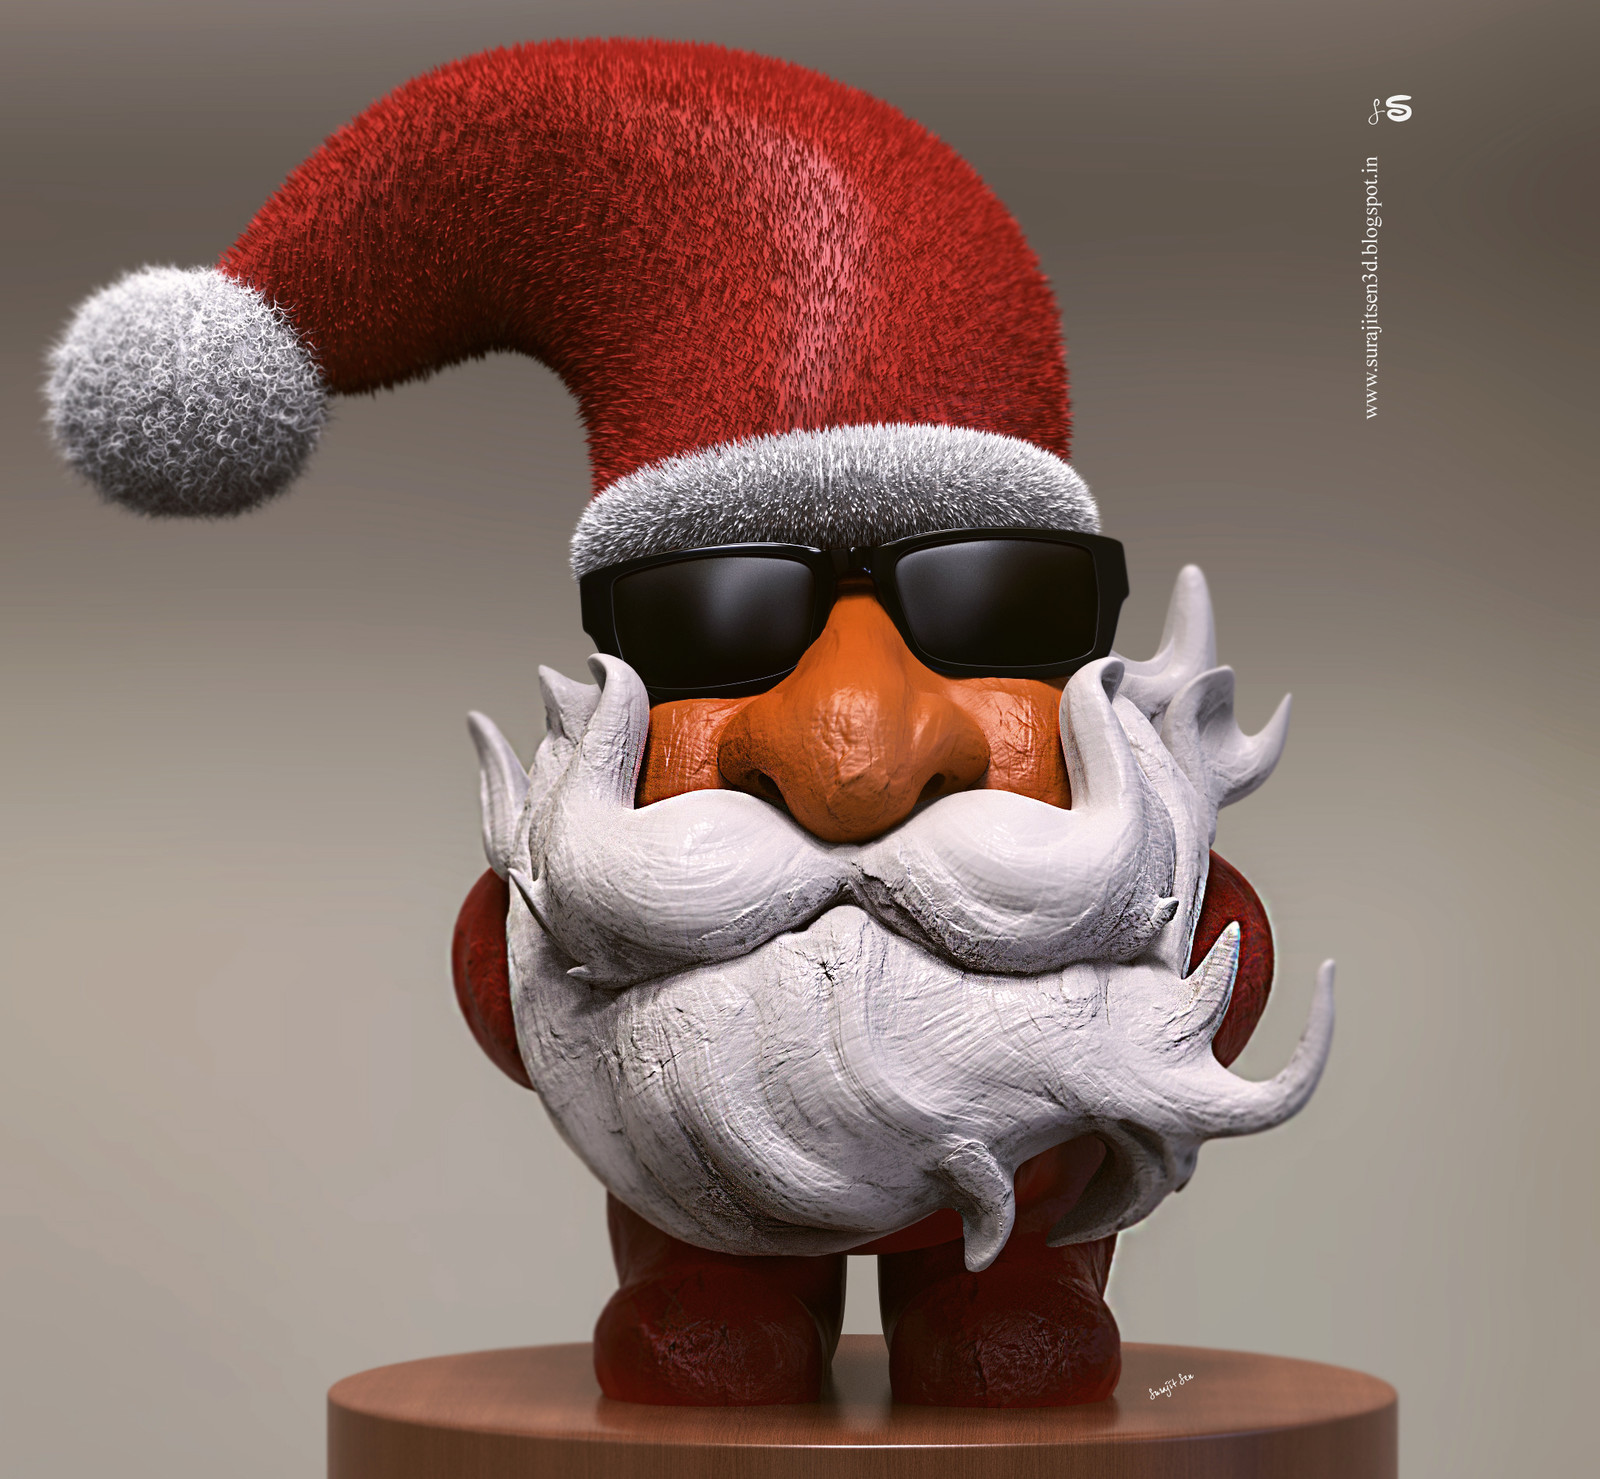 #digitalsculpt #doodle  #study